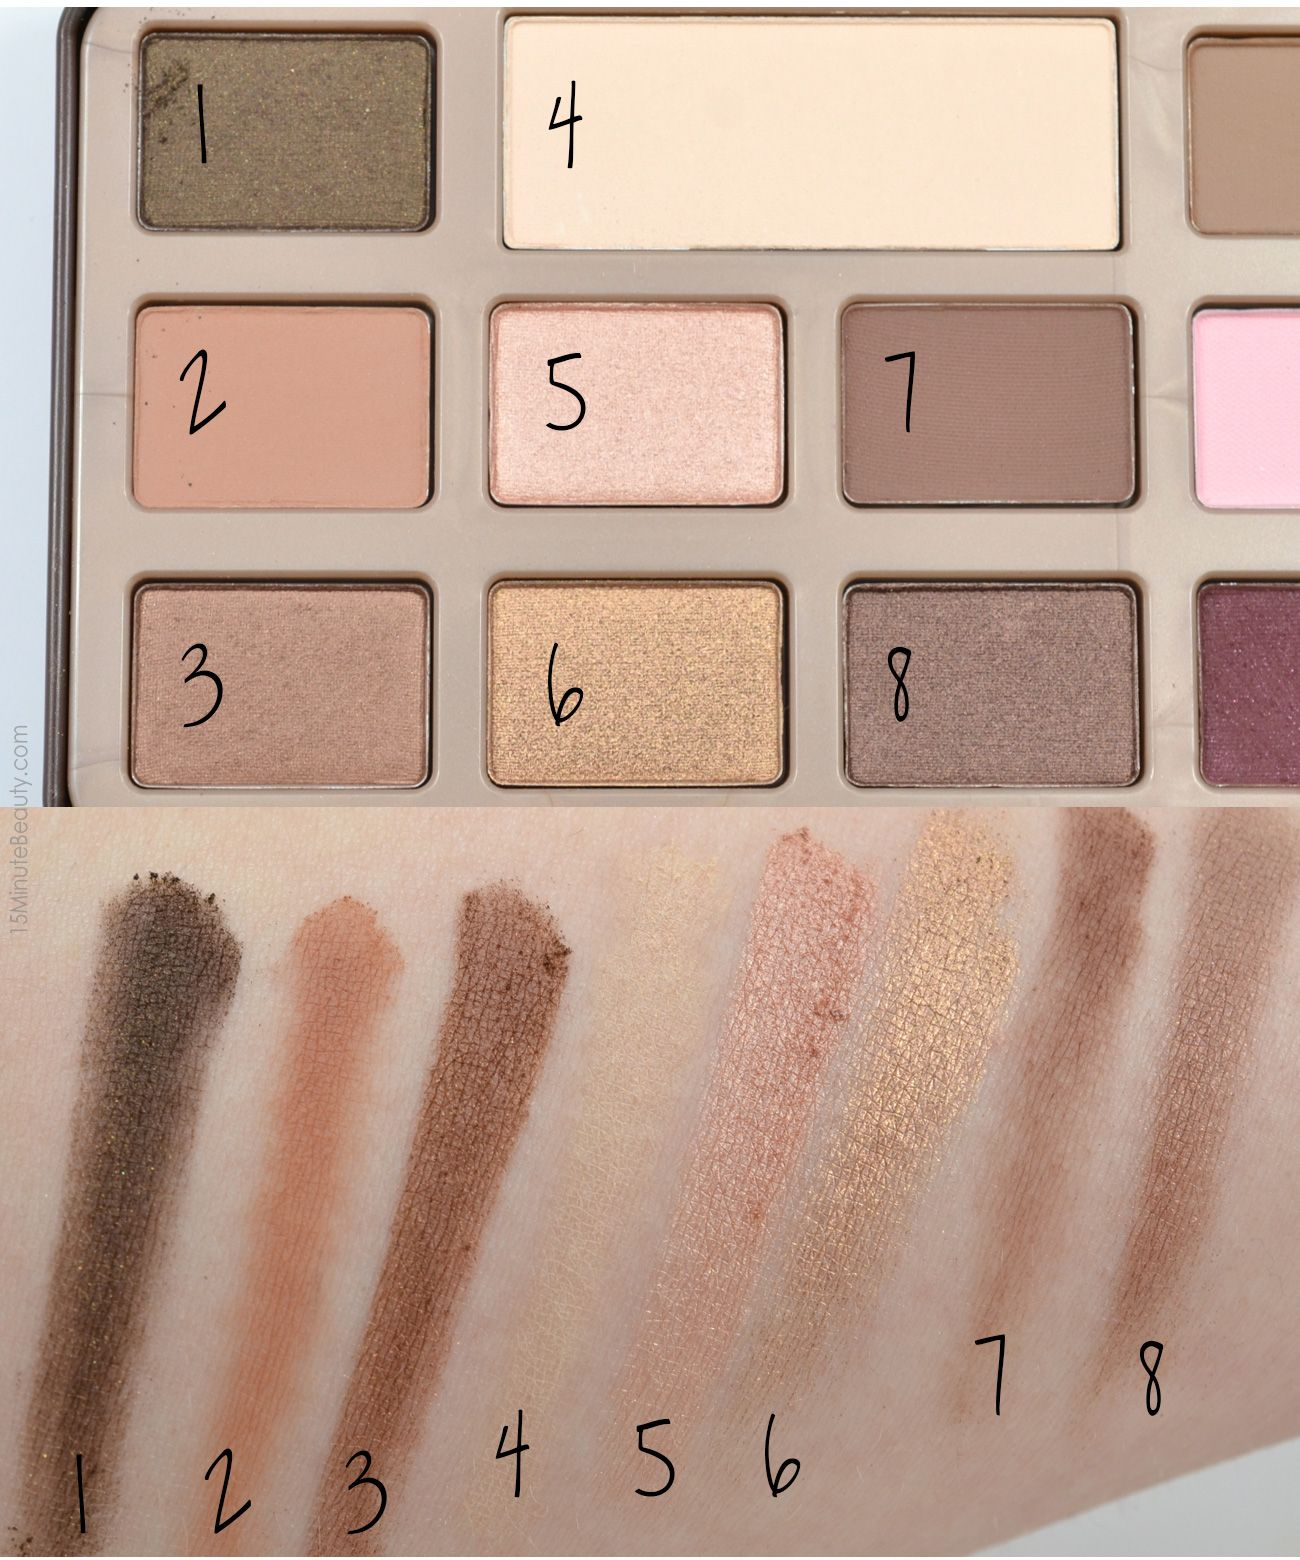 Too Faced Chocolate Bar Palette Review and Swatches | Chocolate ...